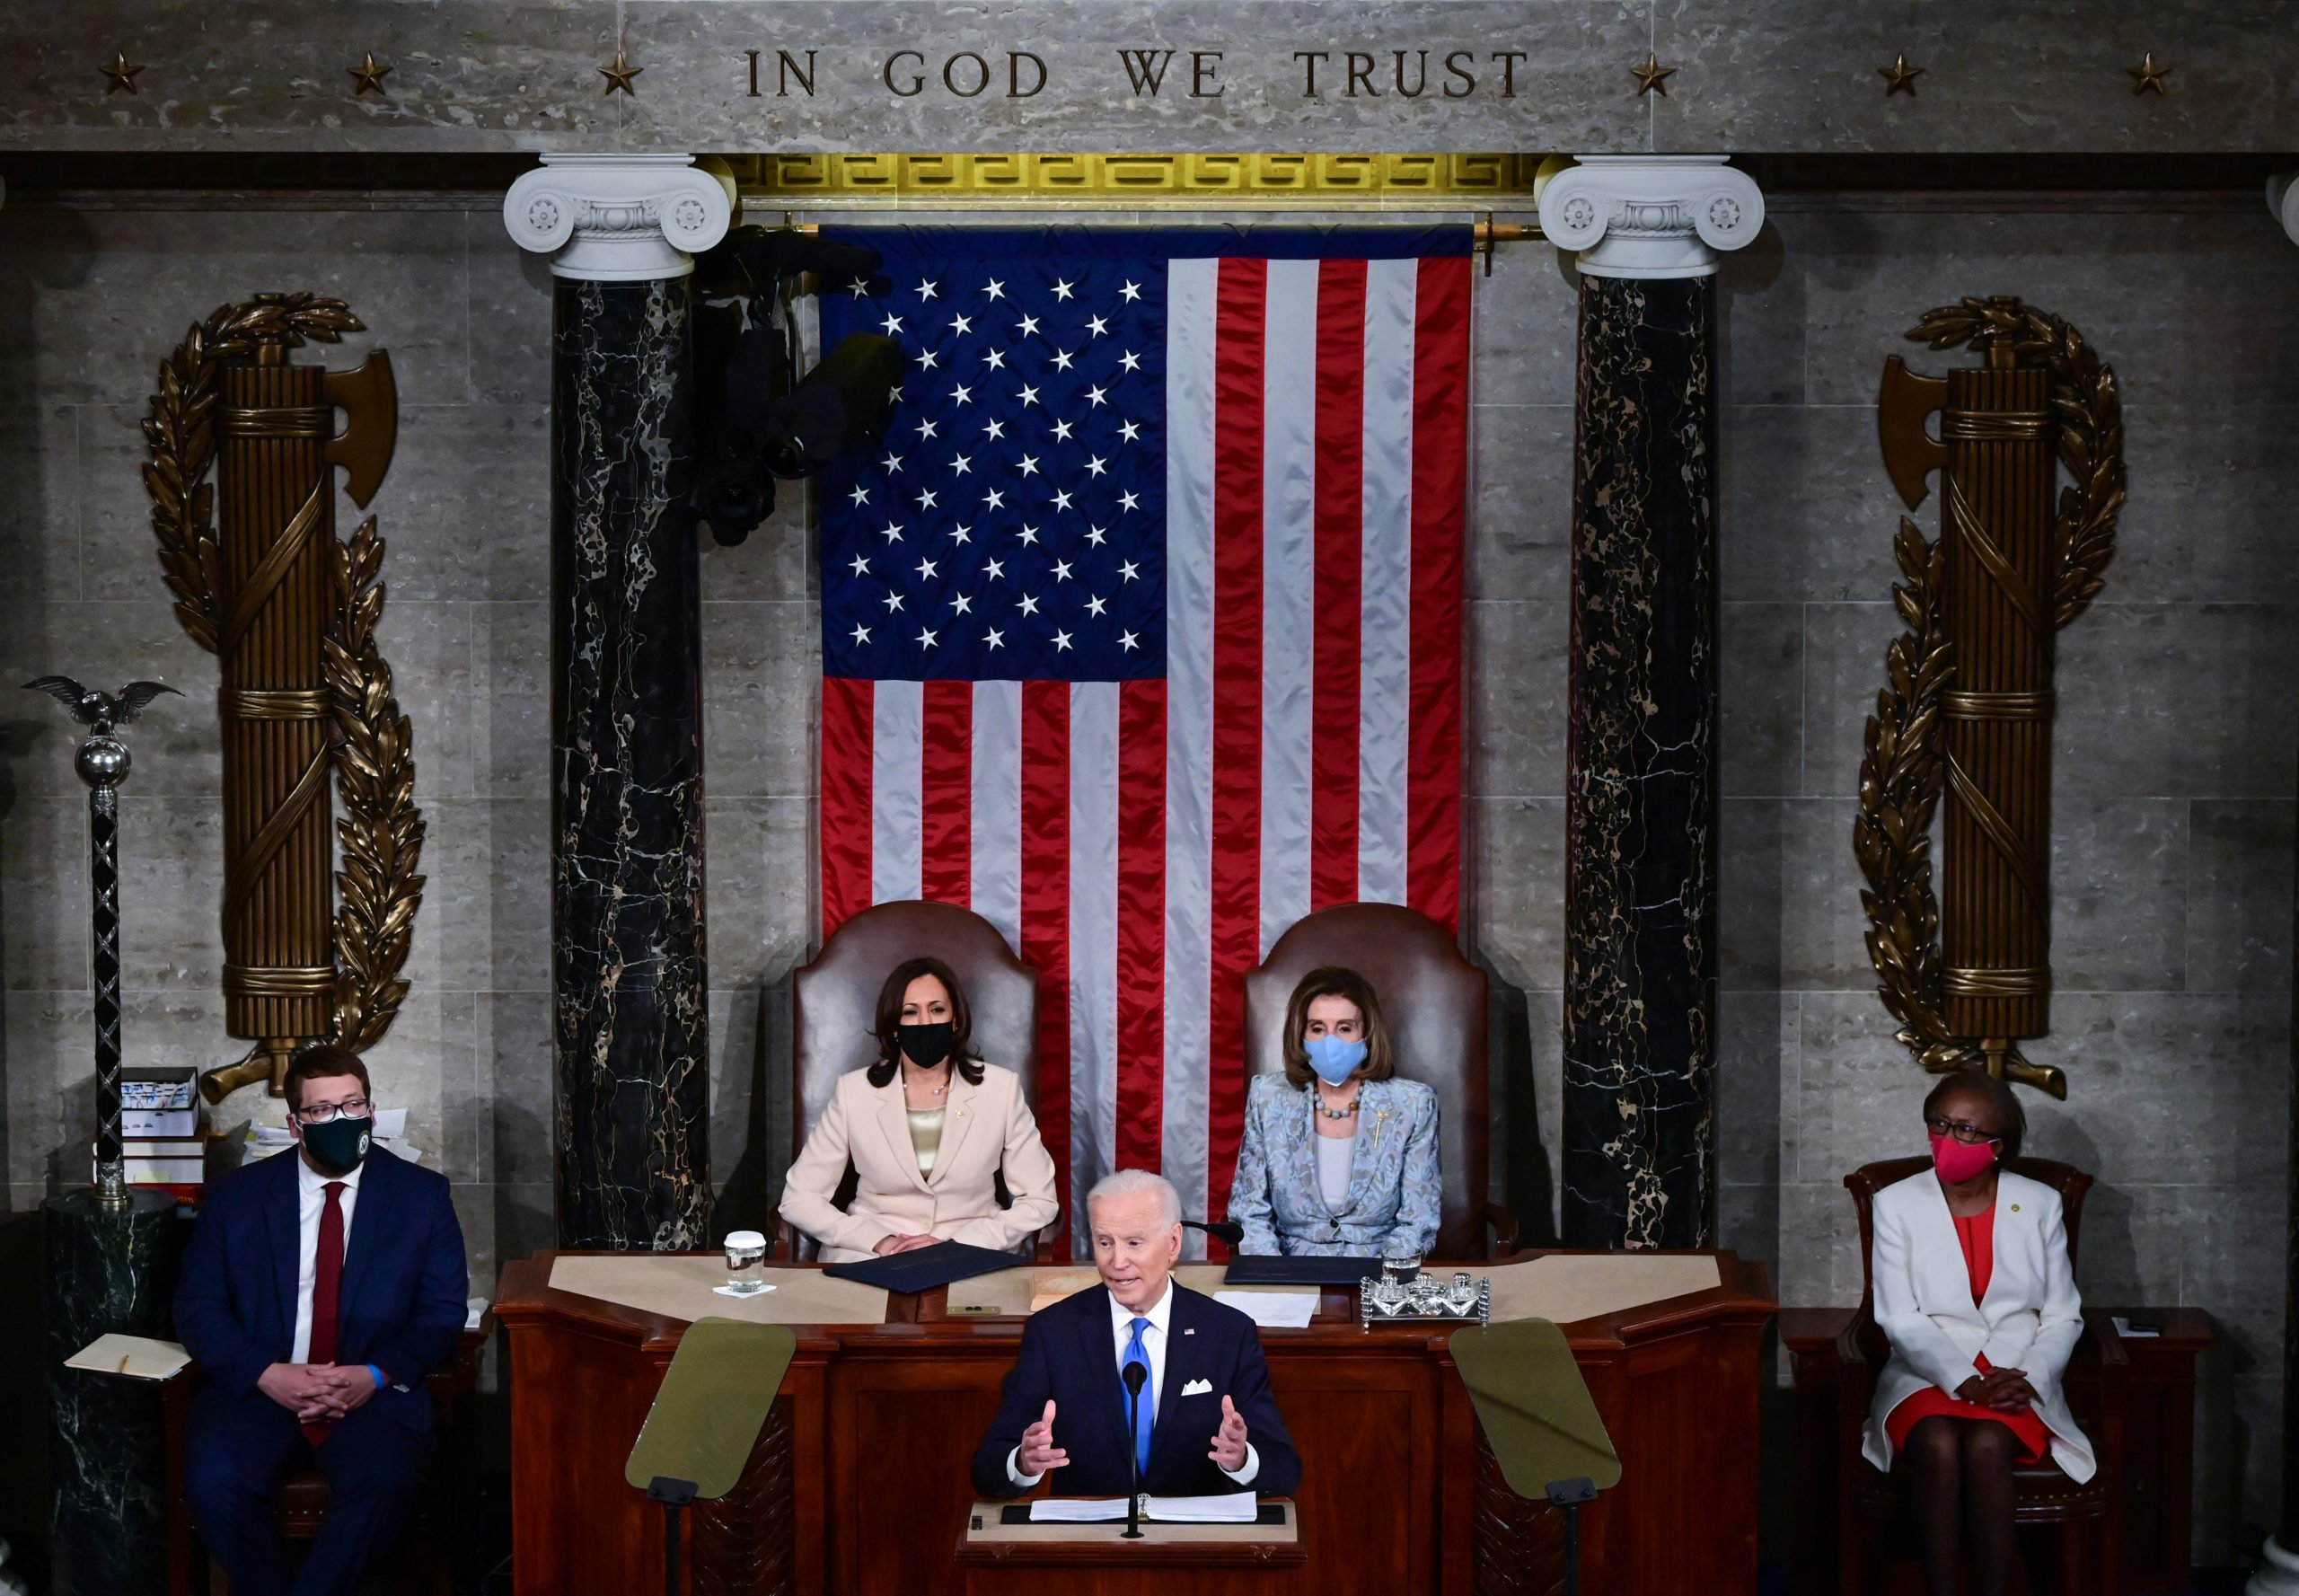 President Joe Biden addresses a joint session of congress as Vice President Kamala Harris and House Speaker Nancy Pelosi look on in the House chamber of the U.S. Capitol on Wednesday evening. (Jim Watson/Pool/Getty Images)